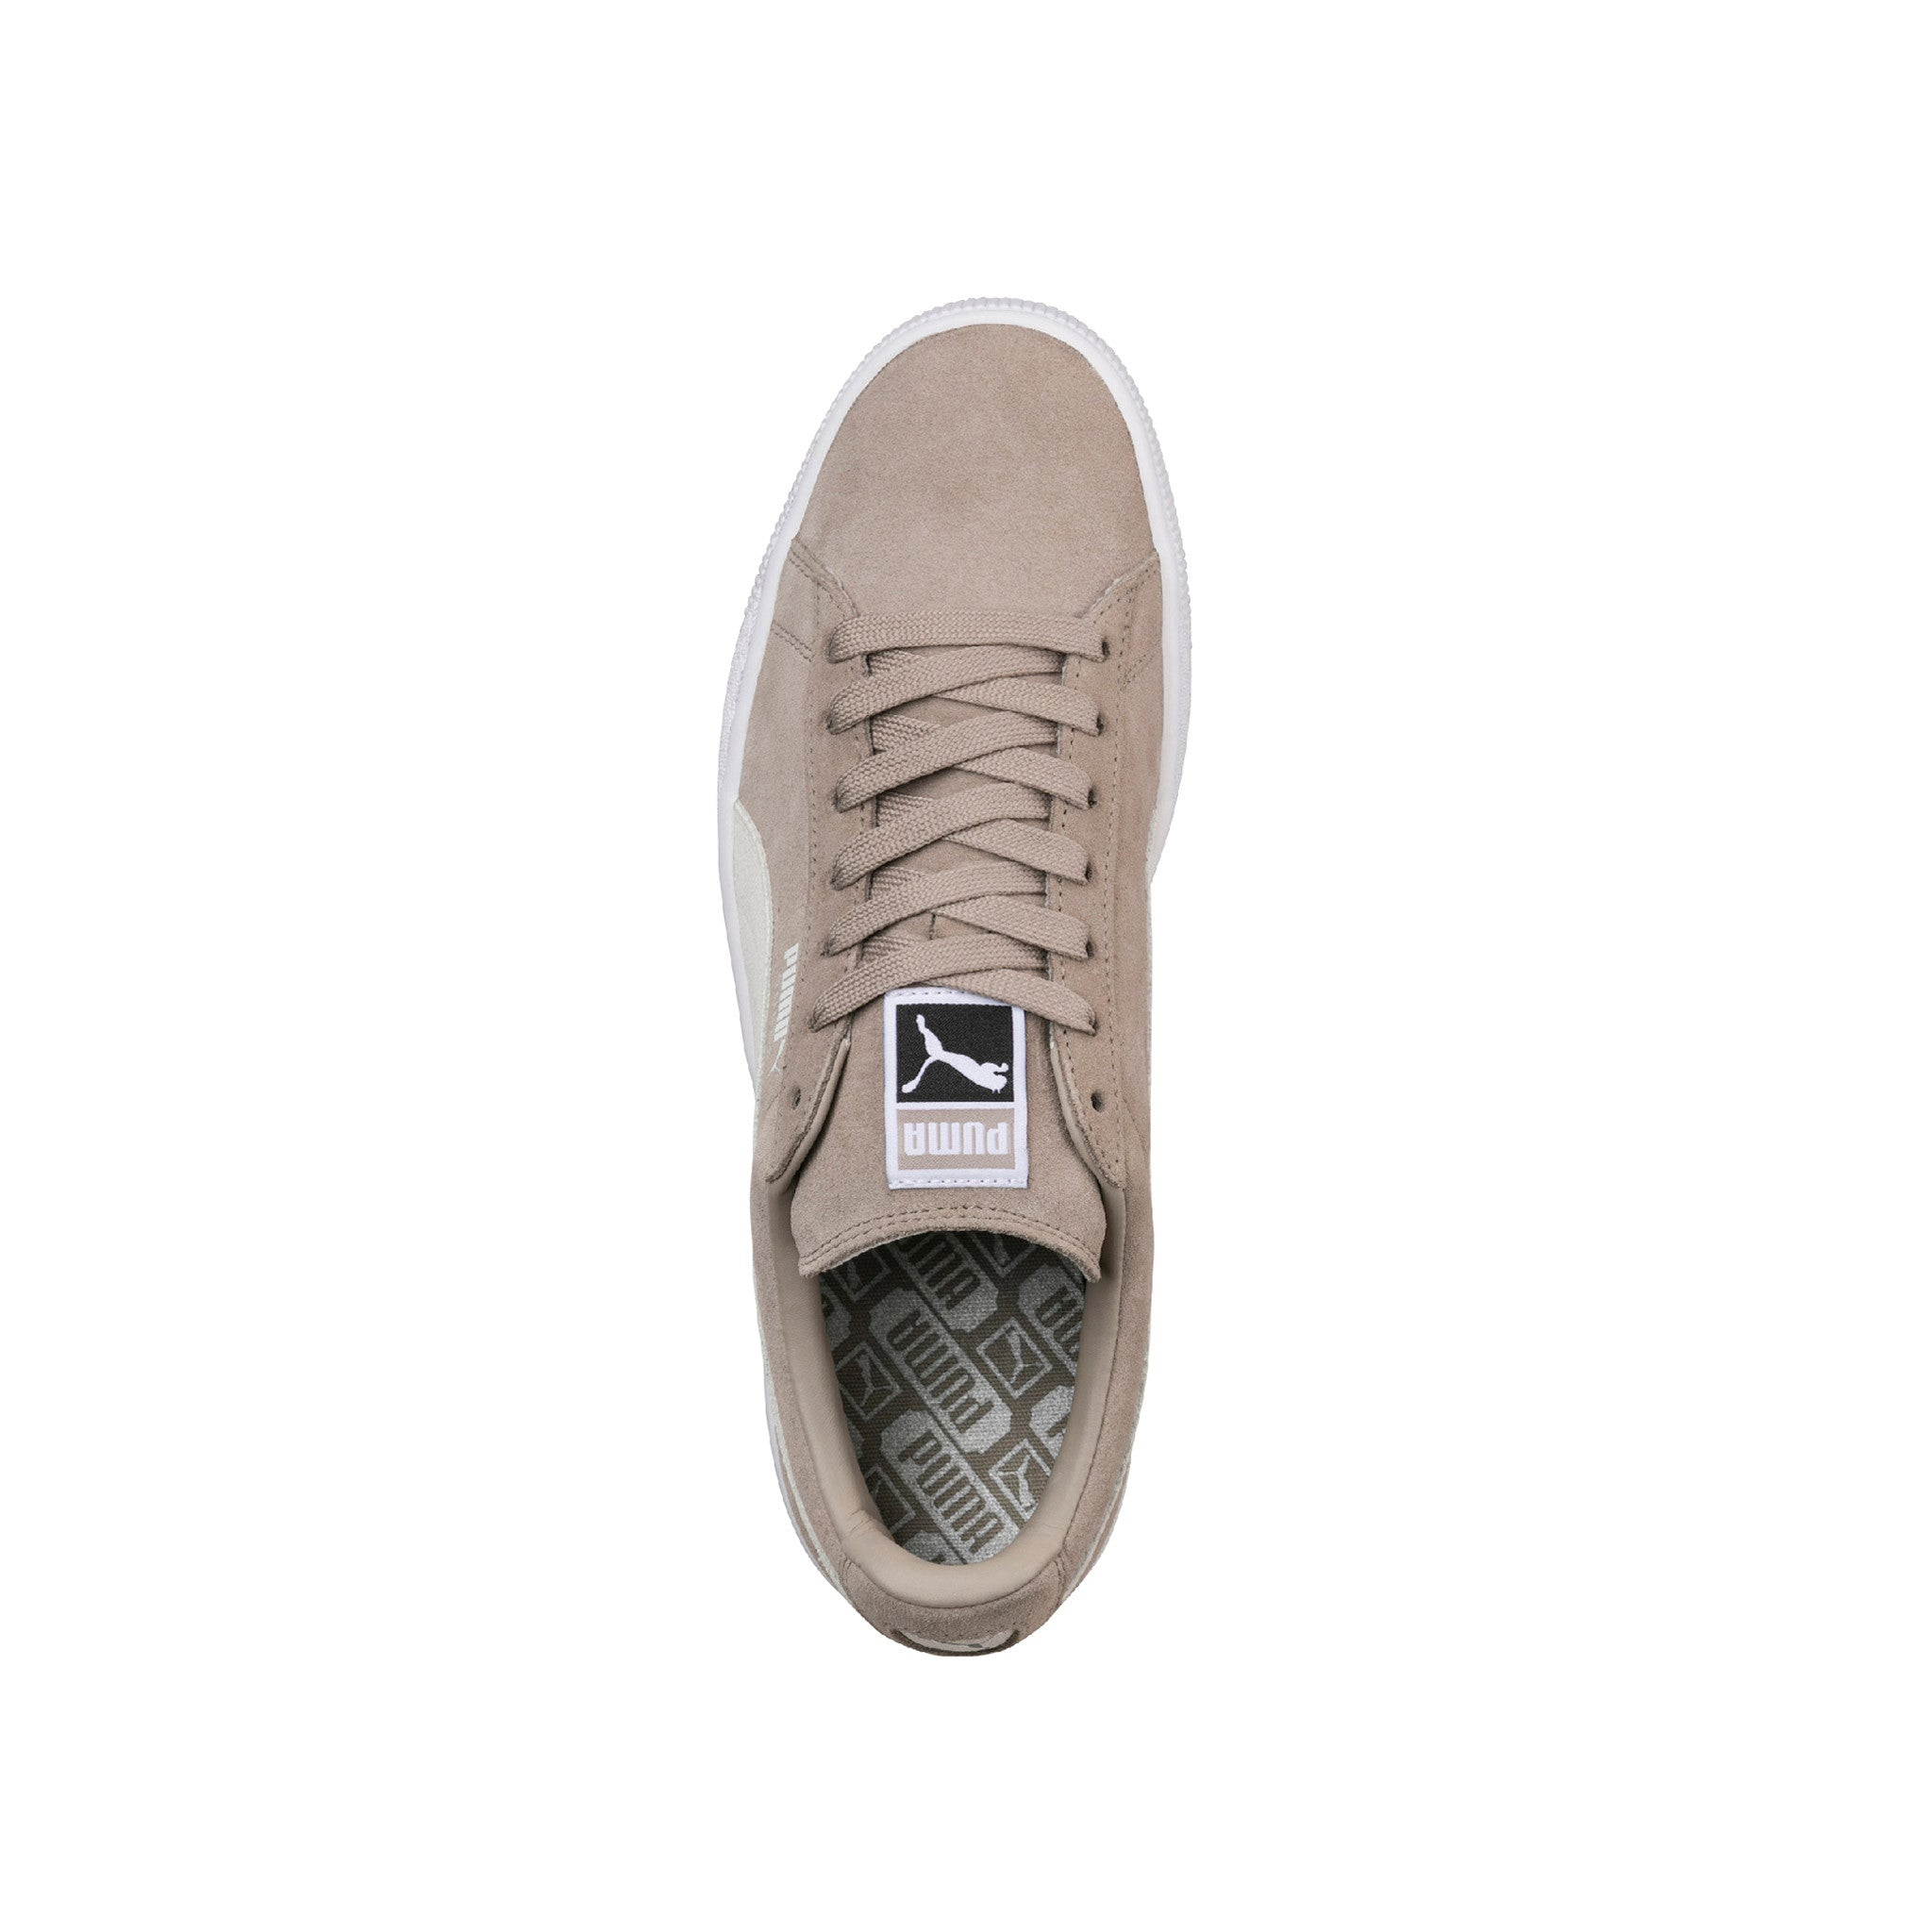 Suede Classic Puma Sneakers Beige Top View